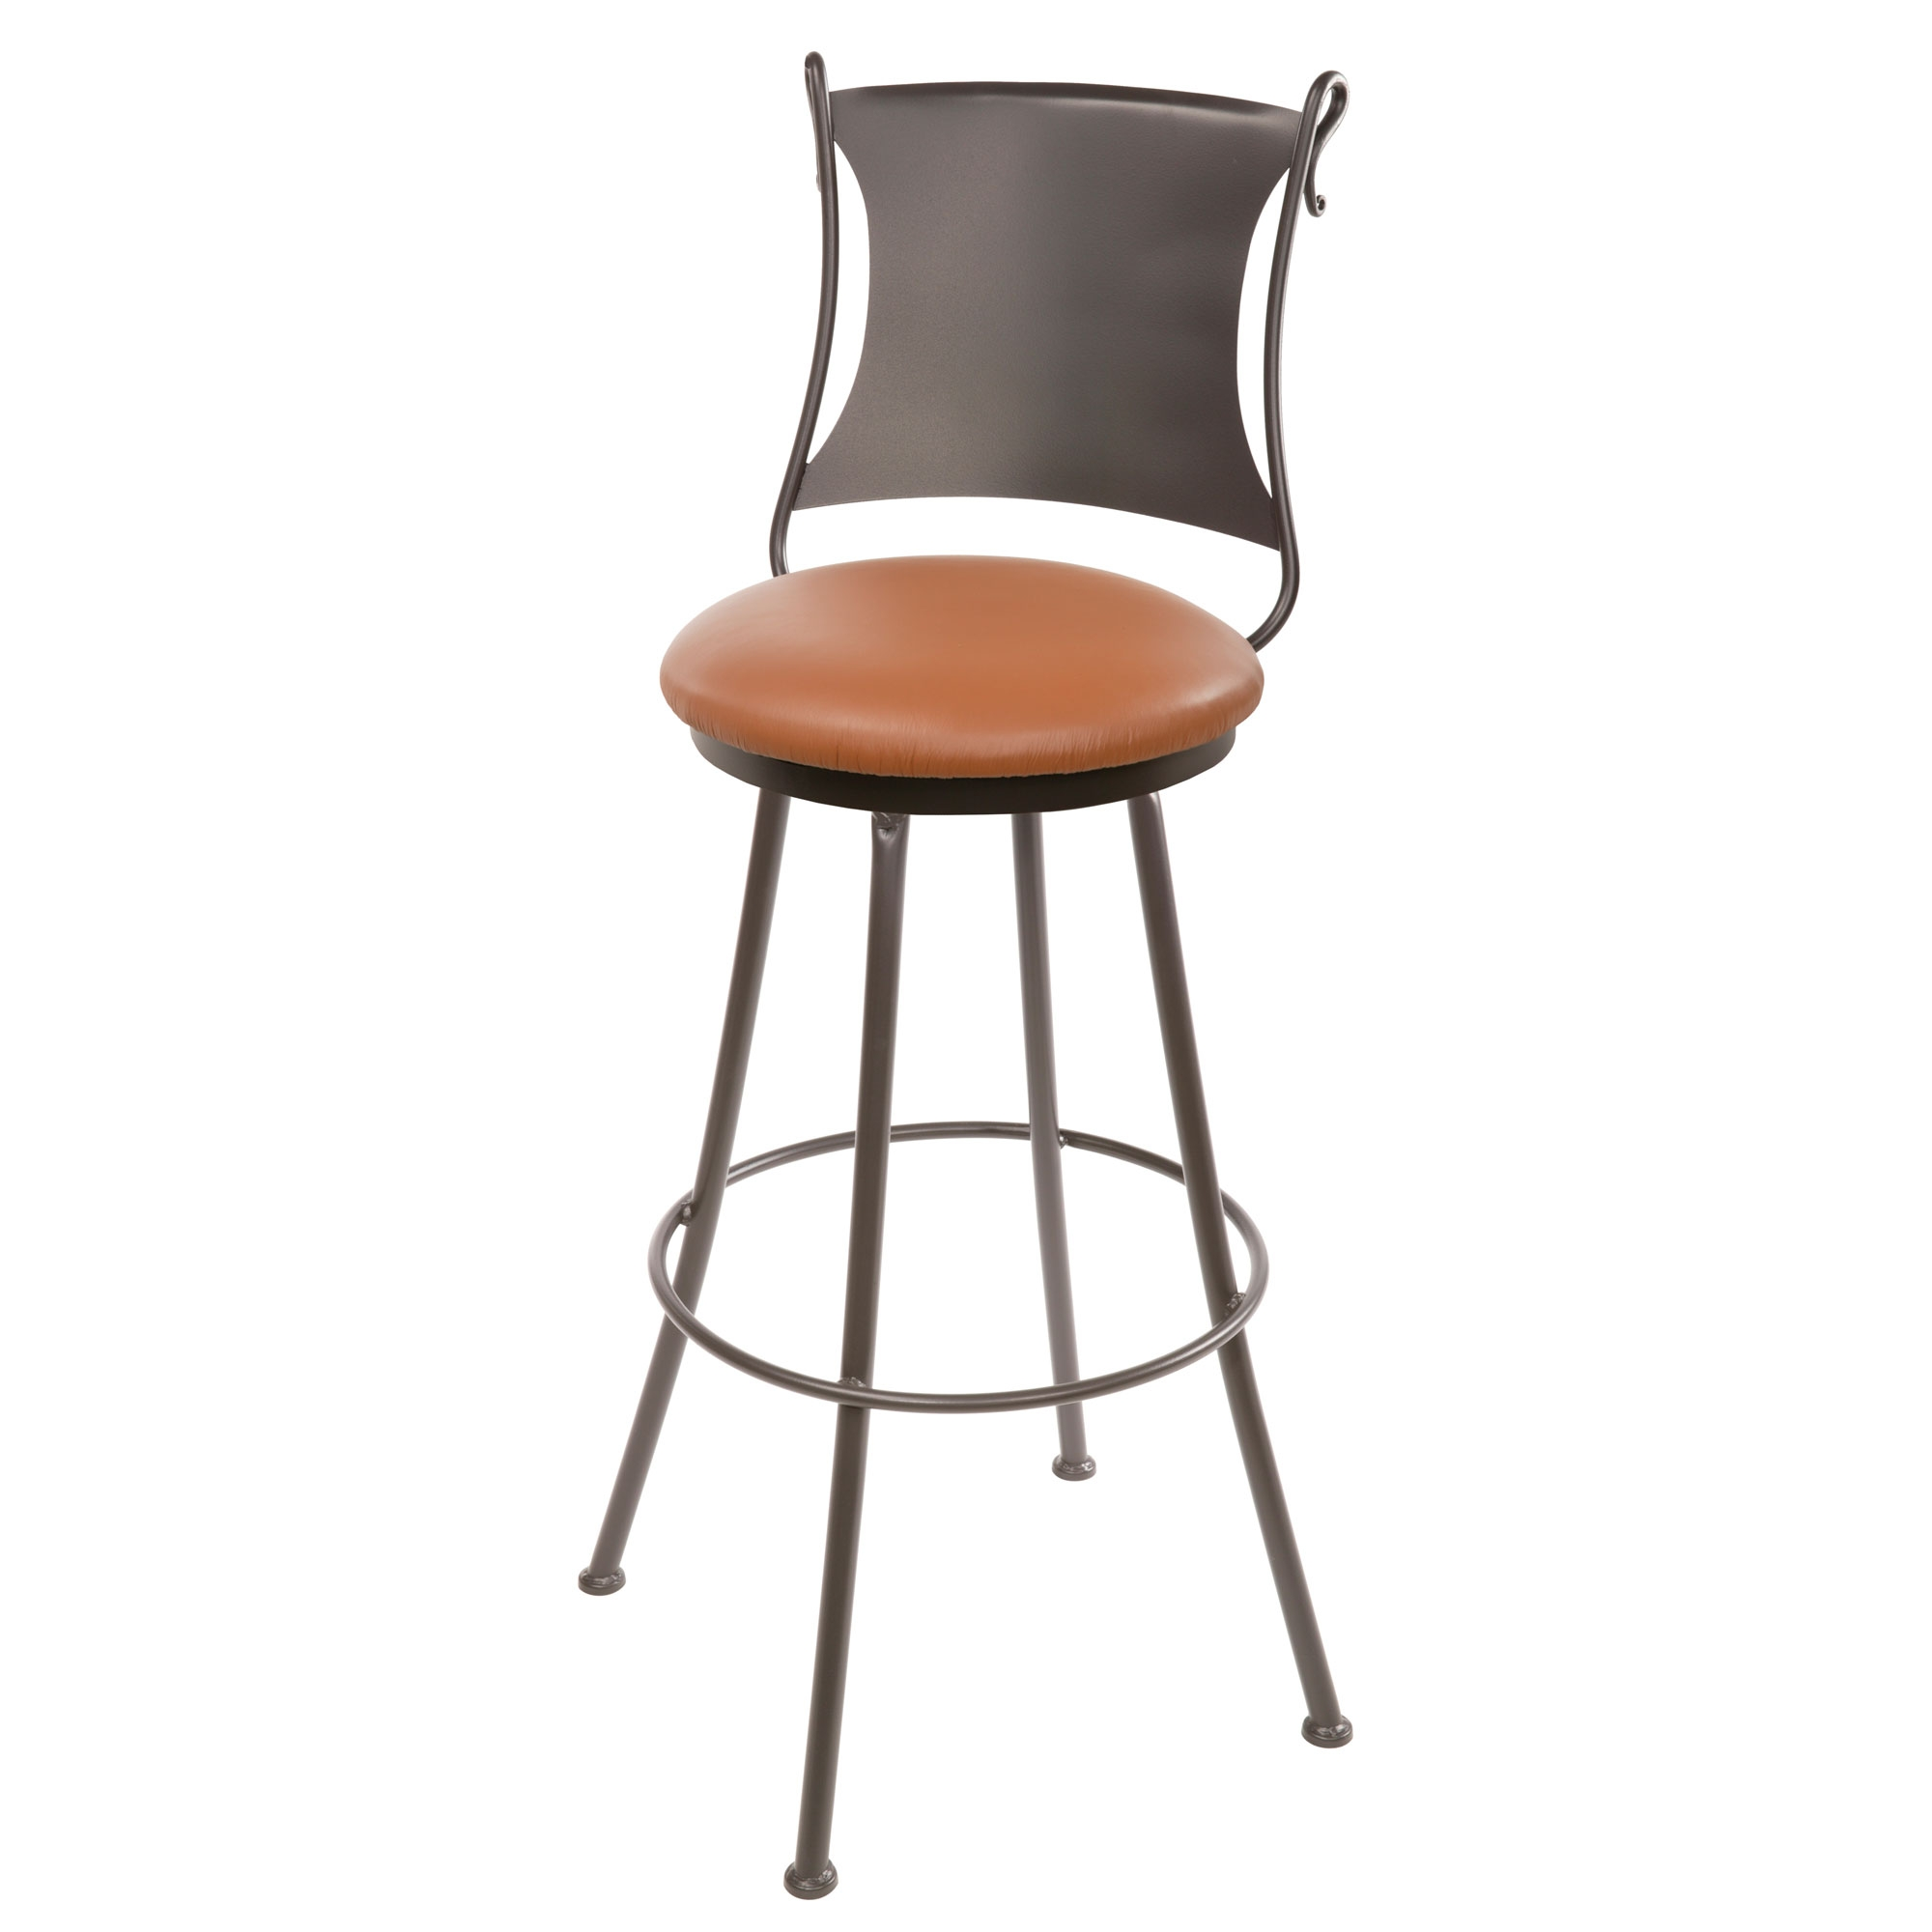 Amazing Wrought Iron Standard Counter Stool 25 Seat Height Gamerscity Chair Design For Home Gamerscityorg